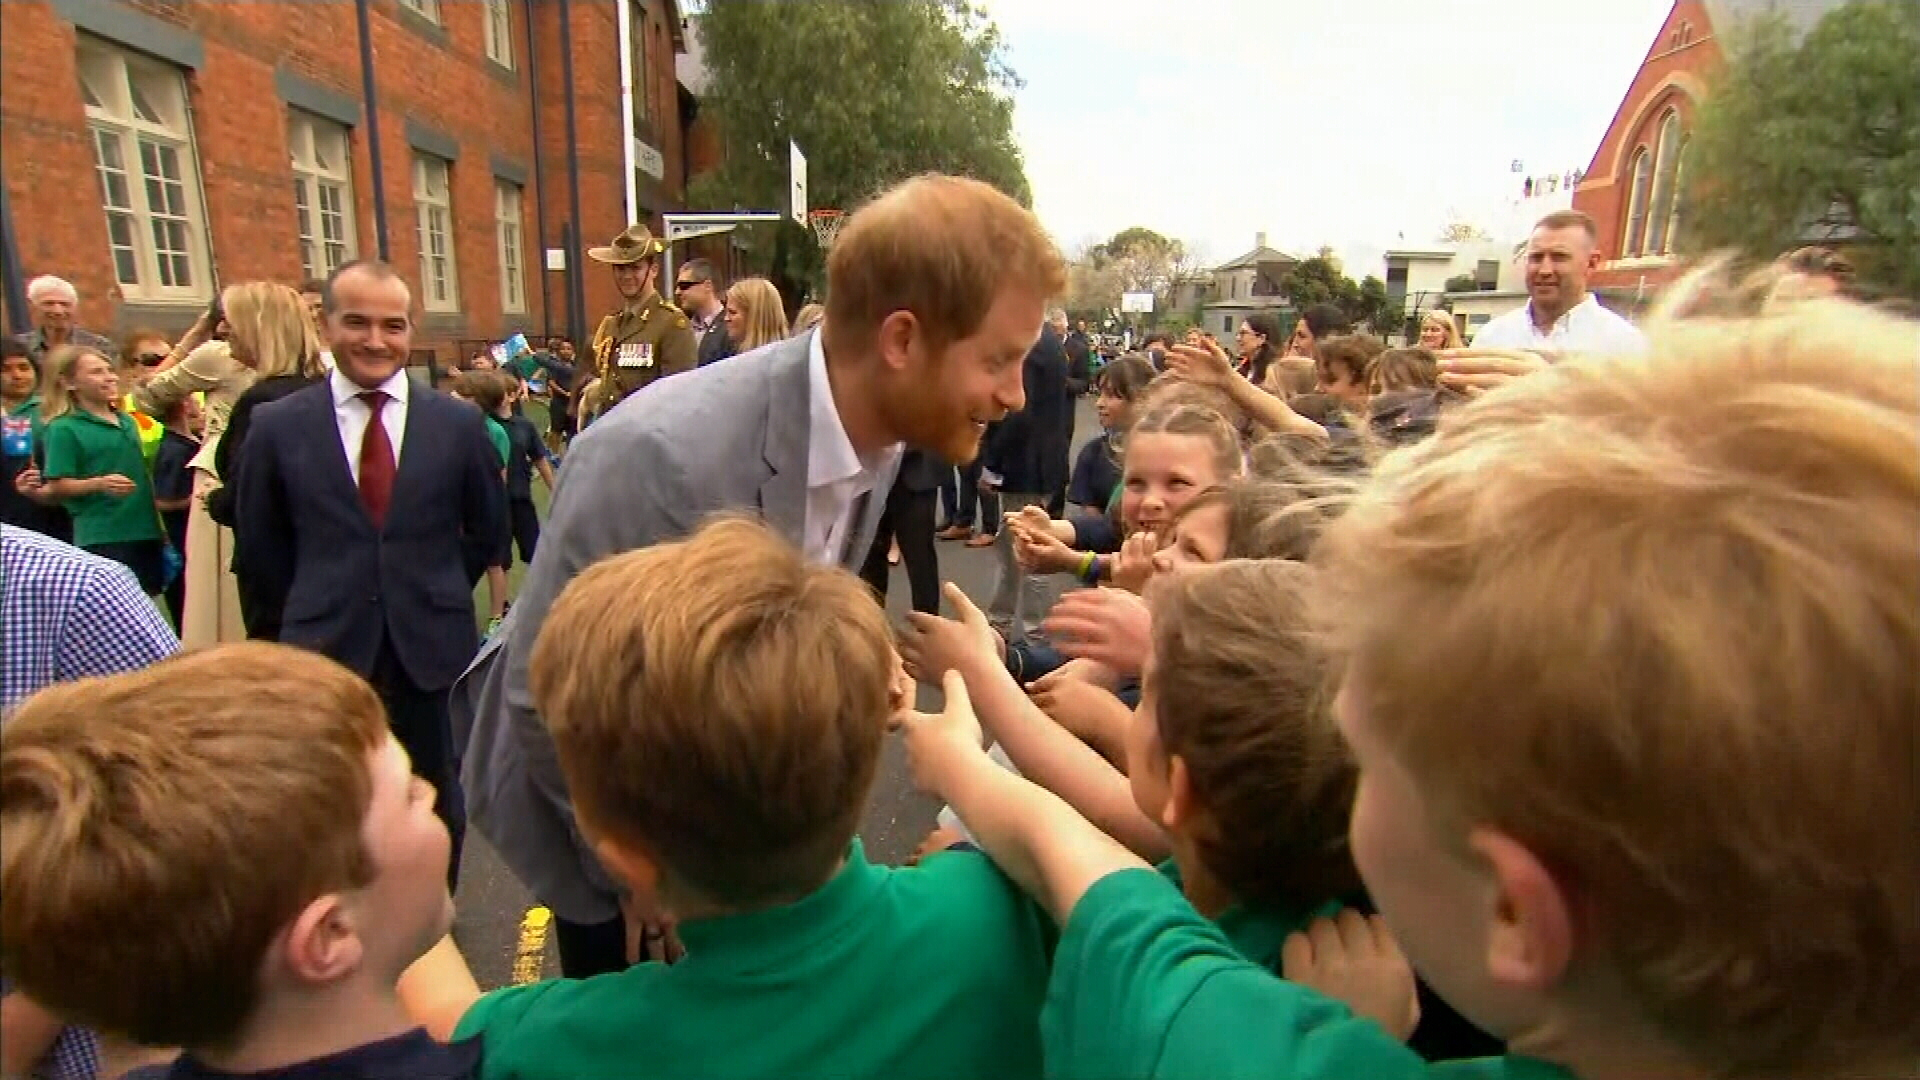 Prince Harry and Meghan mingle with school kids